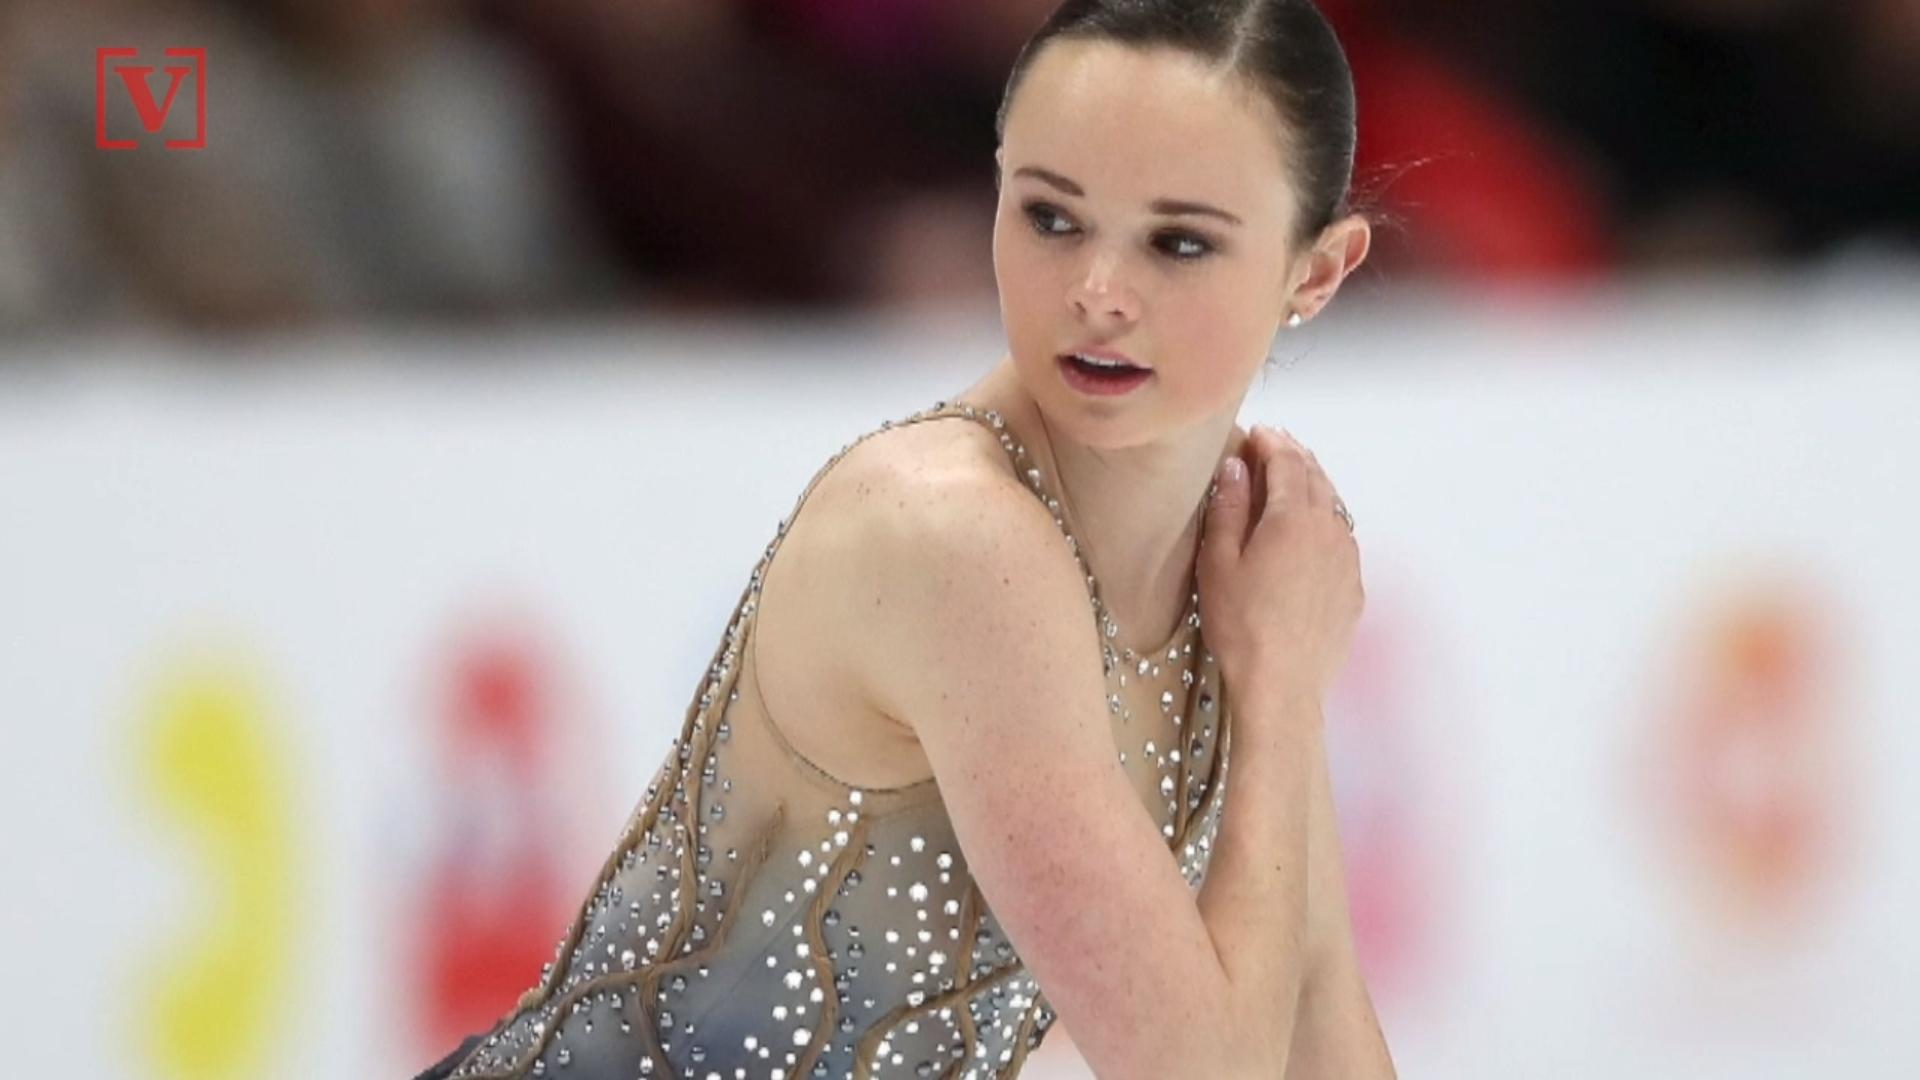 U.S. Figure Skater Accused Of Cutting Rival With Skate At World Championships